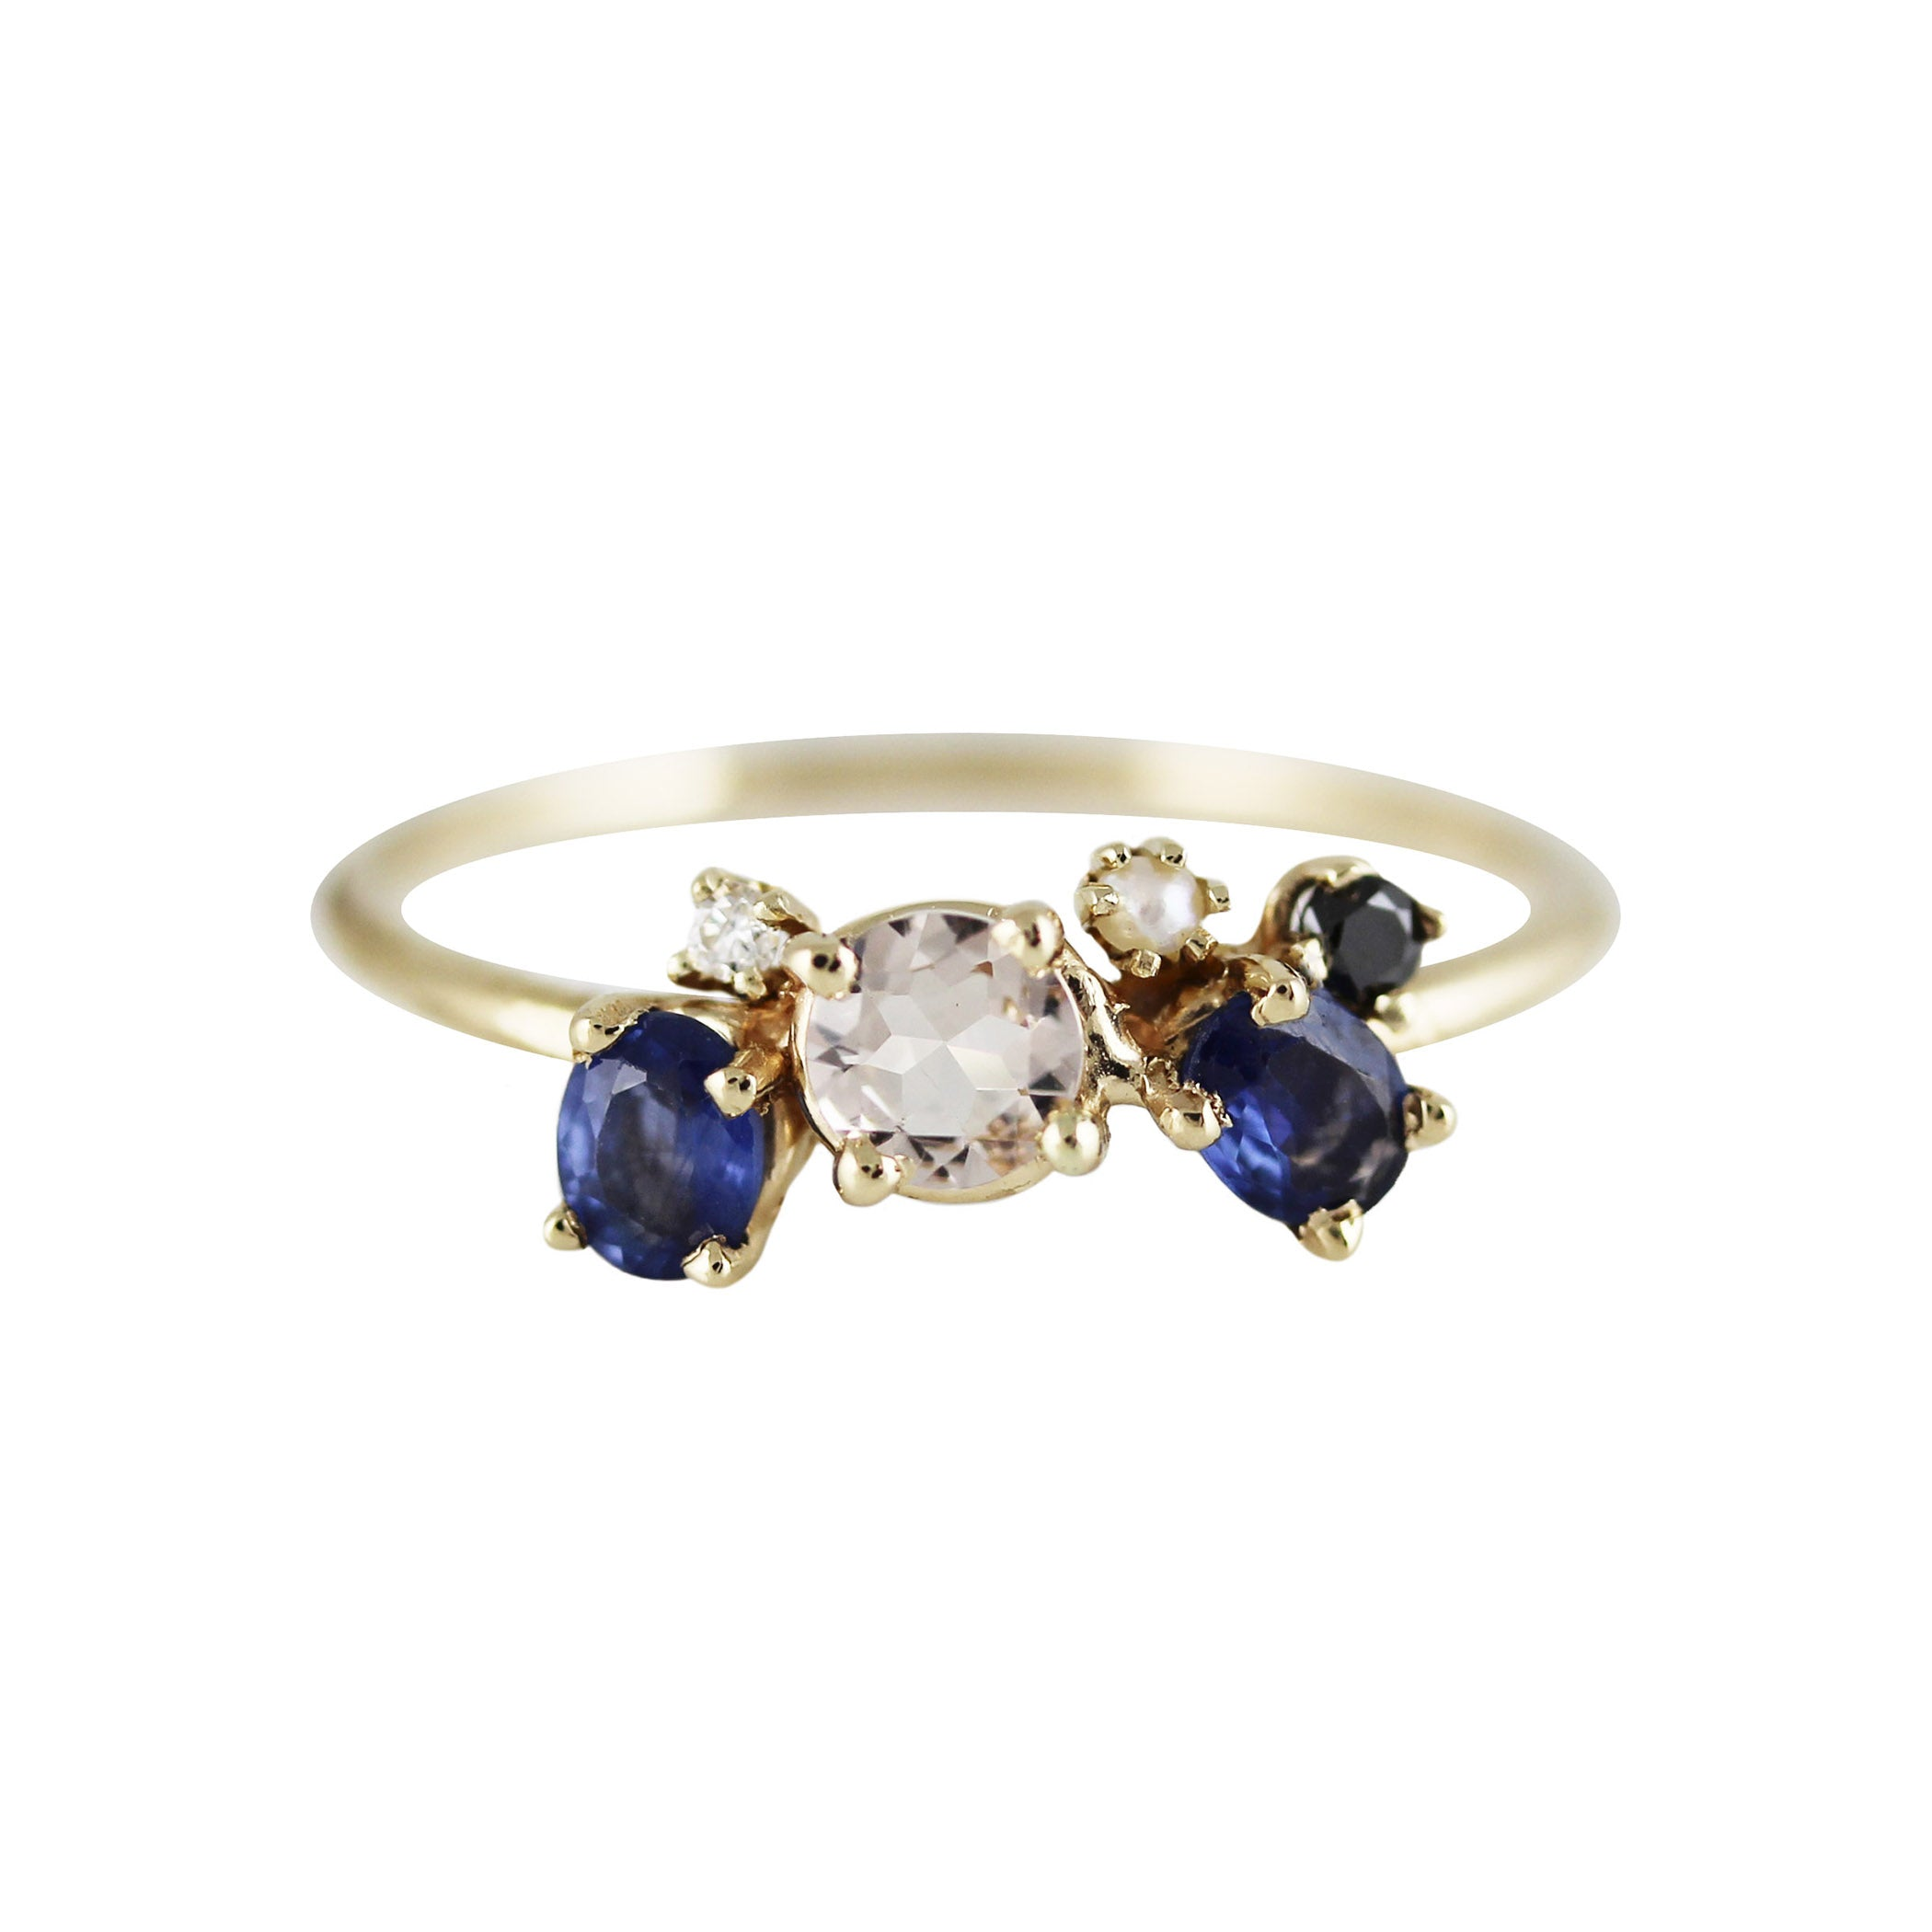 MORGANITE WITH BLUE SAPPHIRE WINGS RING